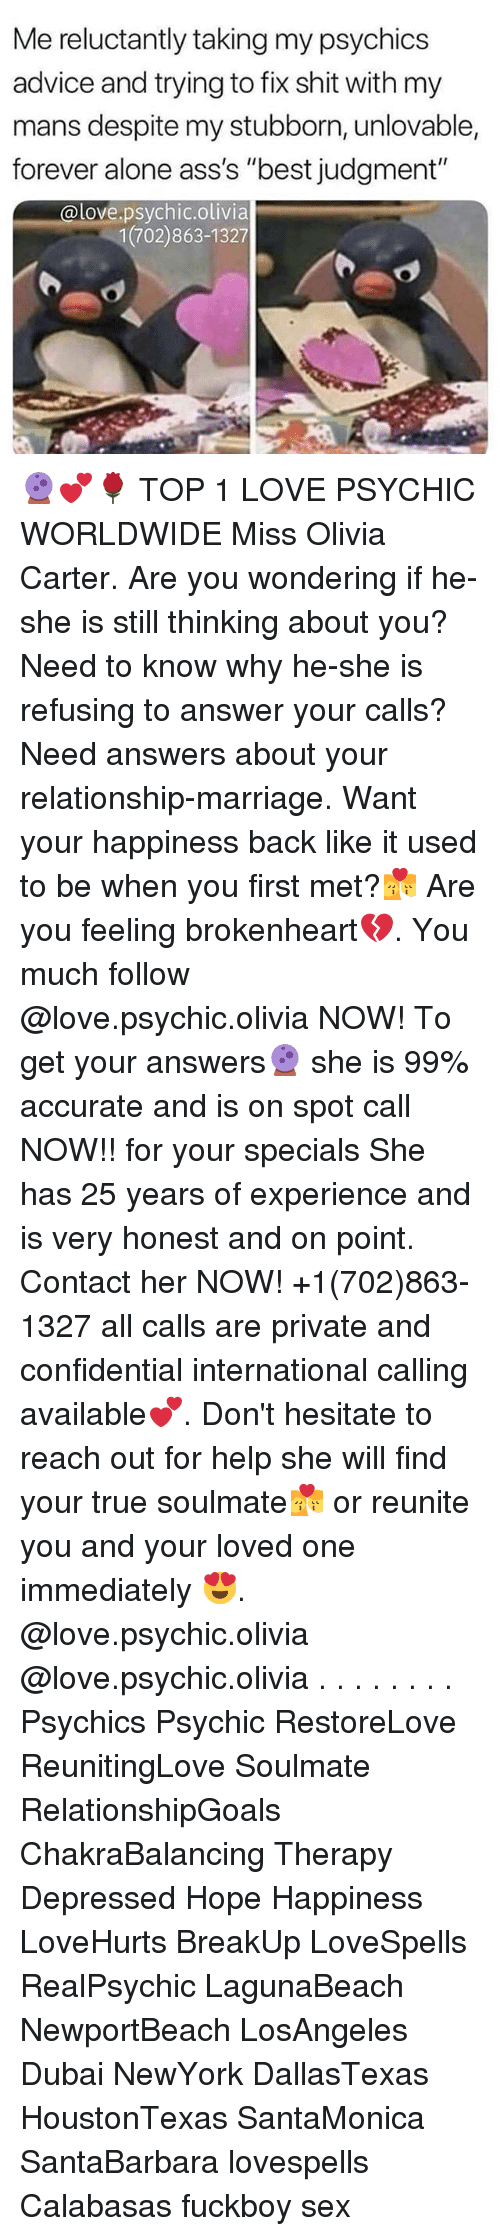 """brokenheart: Me reluctantly taking my psychics  advice and trying to fix shit with my  mans despite my stubborn, unlovable,  forever alone ass's """"best judgment""""  @love.psychic.olivia  1(702)863-1327 🔮💕🌹 TOP 1 LOVE PSYCHIC WORLDWIDE Miss Olivia Carter. Are you wondering if he-she is still thinking about you? Need to know why he-she is refusing to answer your calls? Need answers about your relationship-marriage. Want your happiness back like it used to be when you first met?💏 Are you feeling brokenheart💔. You much follow @love.psychic.olivia NOW! To get your answers🔮 she is 99% accurate and is on spot call NOW!! for your specials She has 25 years of experience and is very honest and on point. Contact her NOW! +1(702)863-1327 all calls are private and confidential international calling available💕. Don't hesitate to reach out for help she will find your true soulmate💏 or reunite you and your loved one immediately 😍. @love.psychic.olivia @love.psychic.olivia . . . . . . . . Psychics Psychic RestoreLove ReunitingLove Soulmate RelationshipGoals ChakraBalancing Therapy Depressed Hope Happiness LoveHurts BreakUp LoveSpells RealPsychic LagunaBeach NewportBeach LosAngeles Dubai NewYork DallasTexas HoustonTexas SantaMonica SantaBarbara lovespells Calabasas fuckboy sex"""